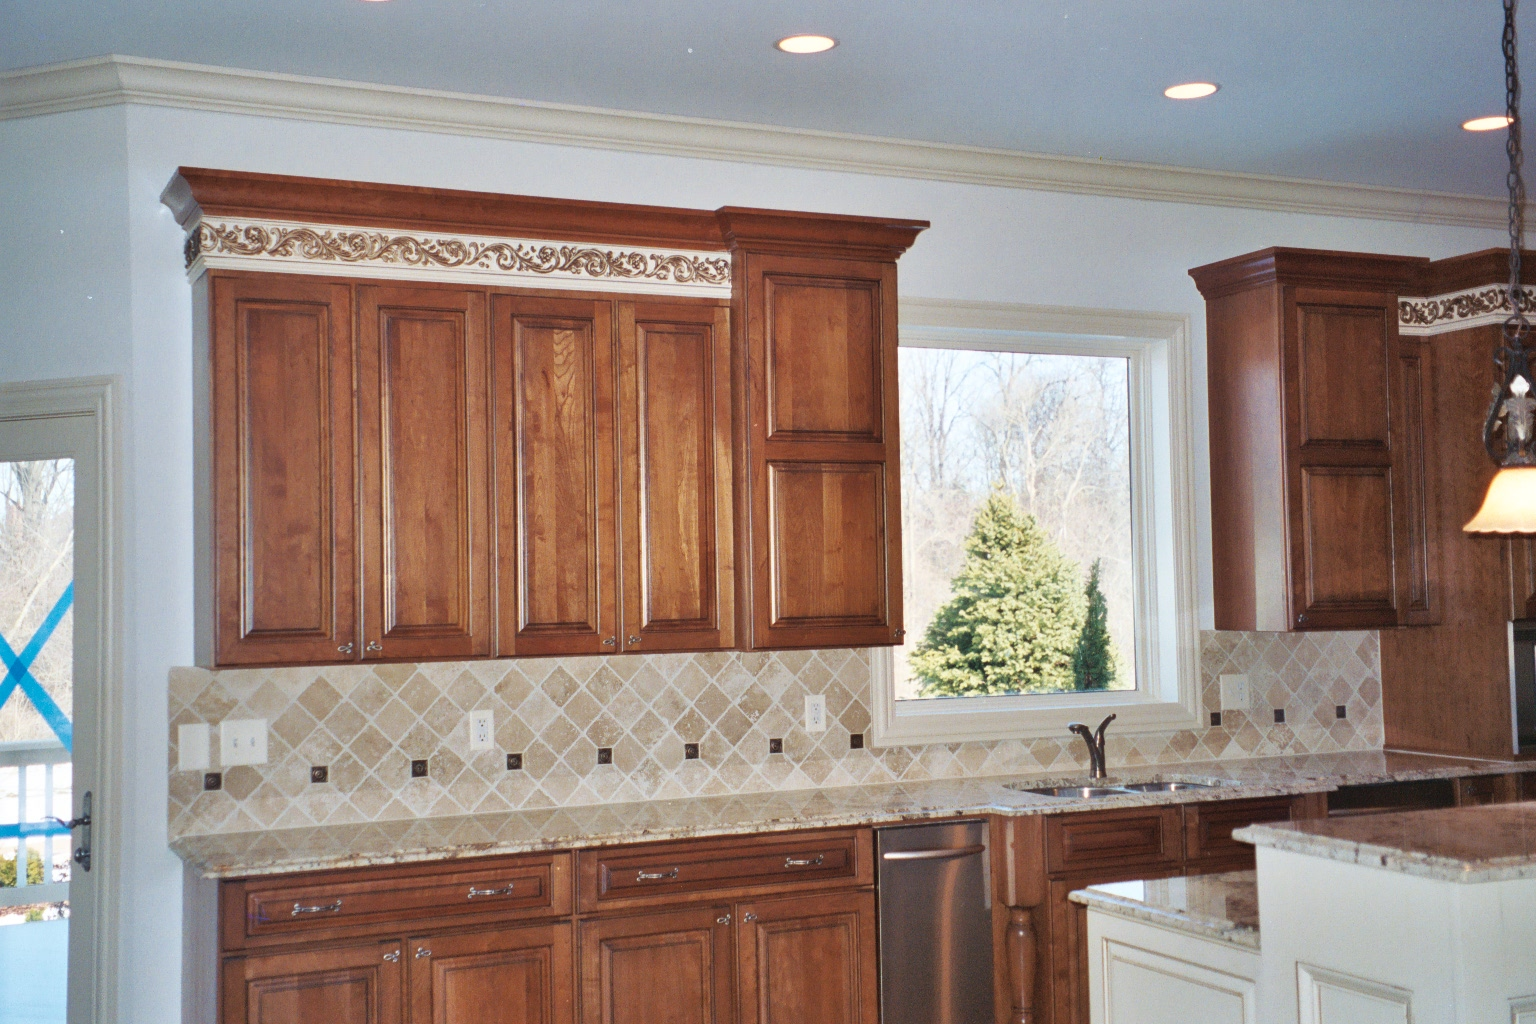 images of kitchen backsplash tile where to end kitchen backsplash tiles belk tile 3660